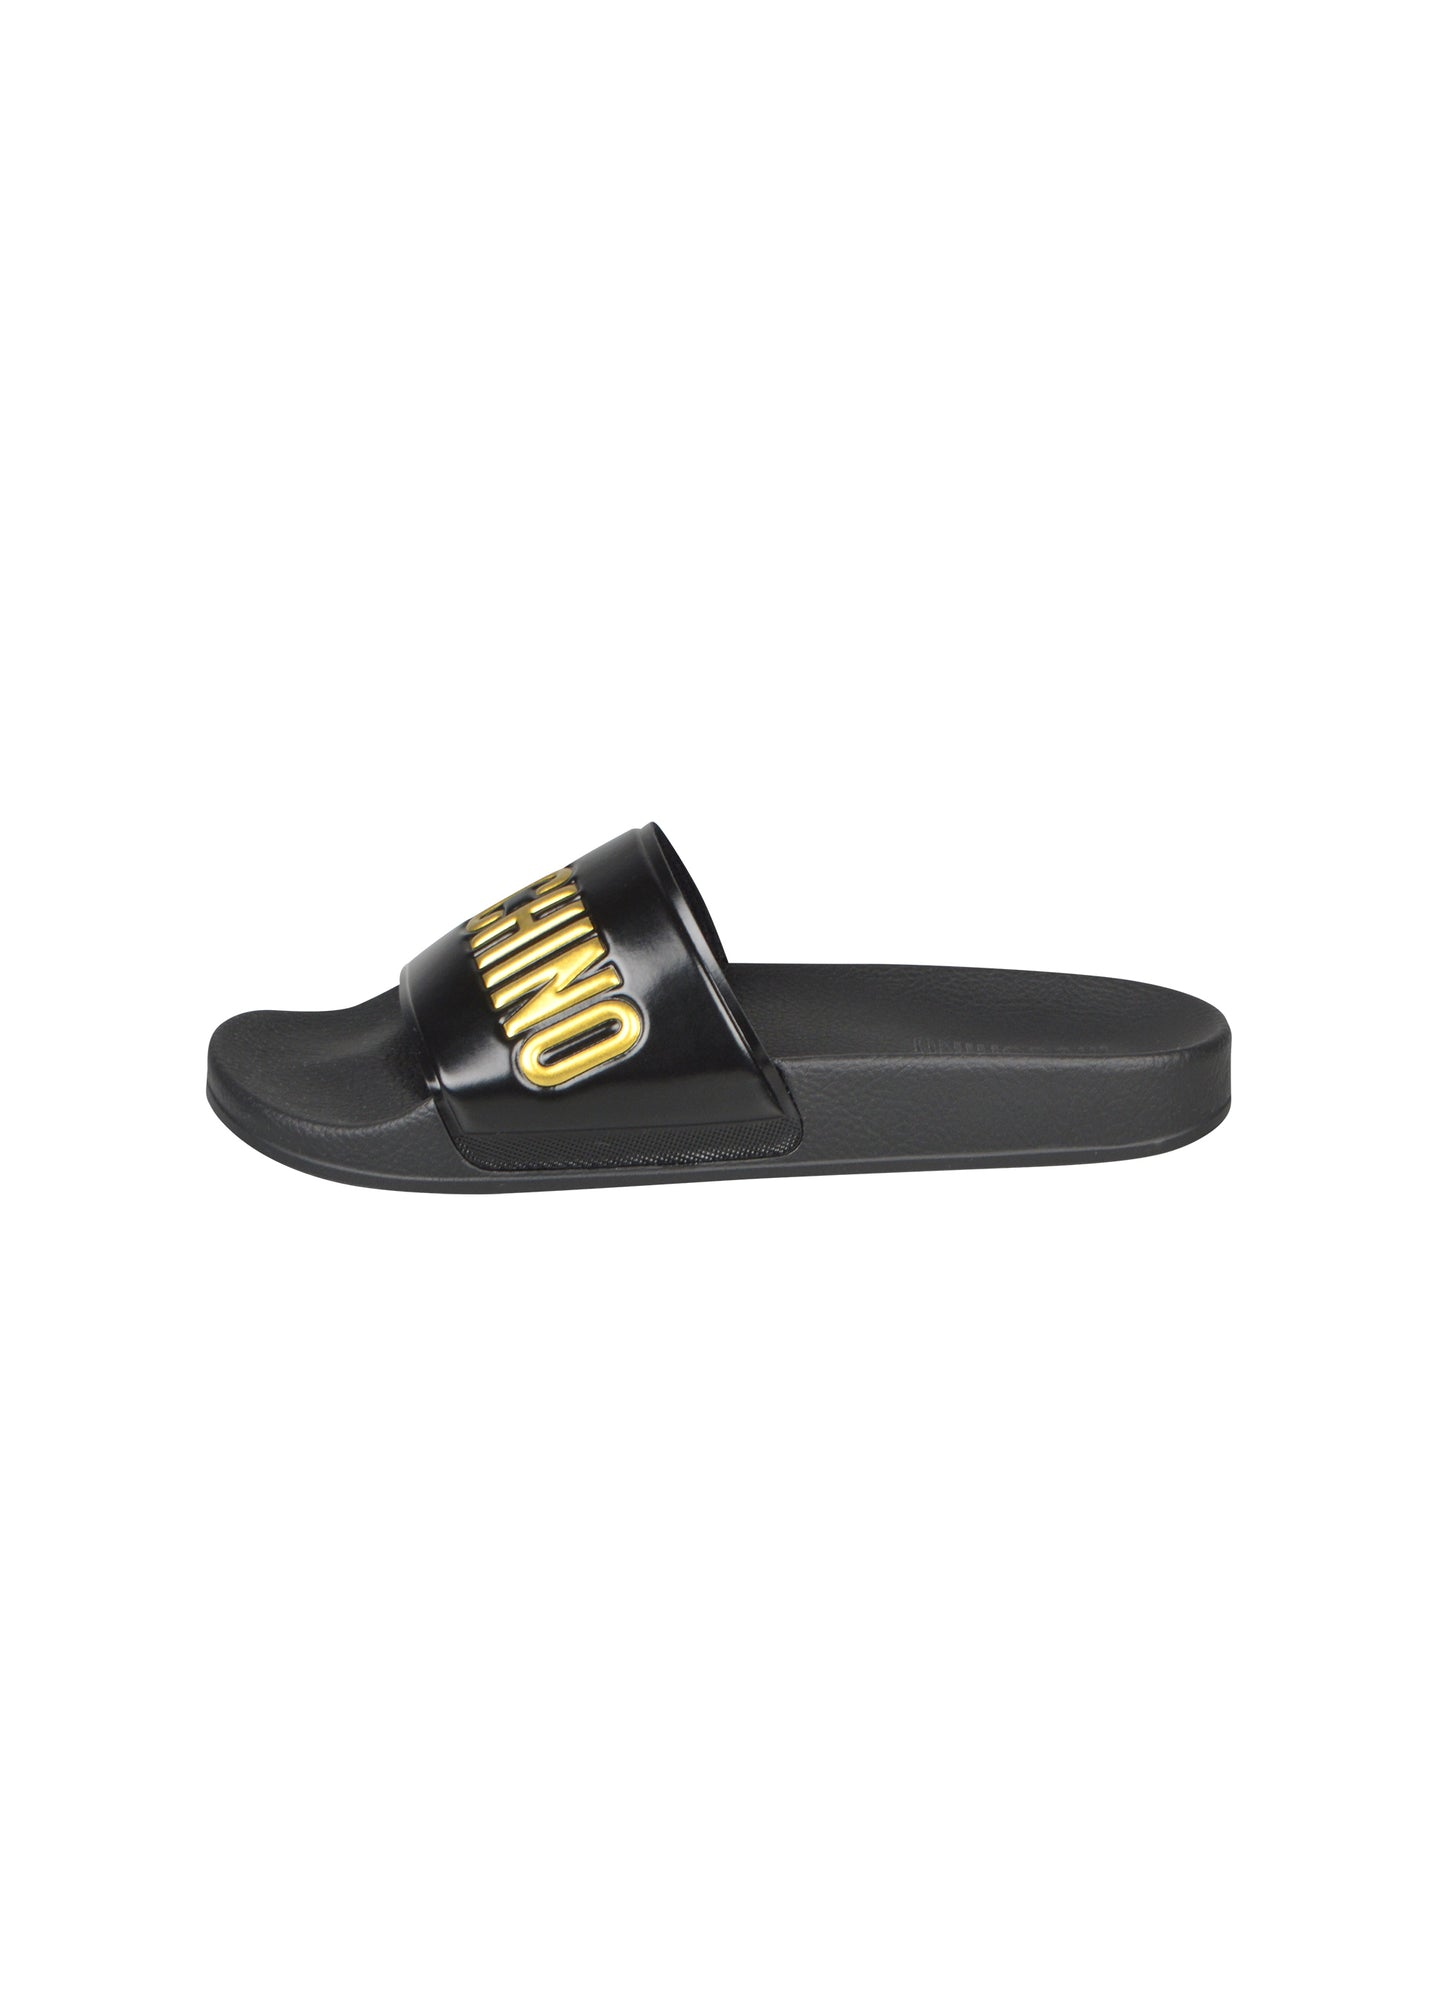 Moschino - Pool Sliders Gold Embossed Letters - 100049 - MB28022G1BG1G00A - Black Gold